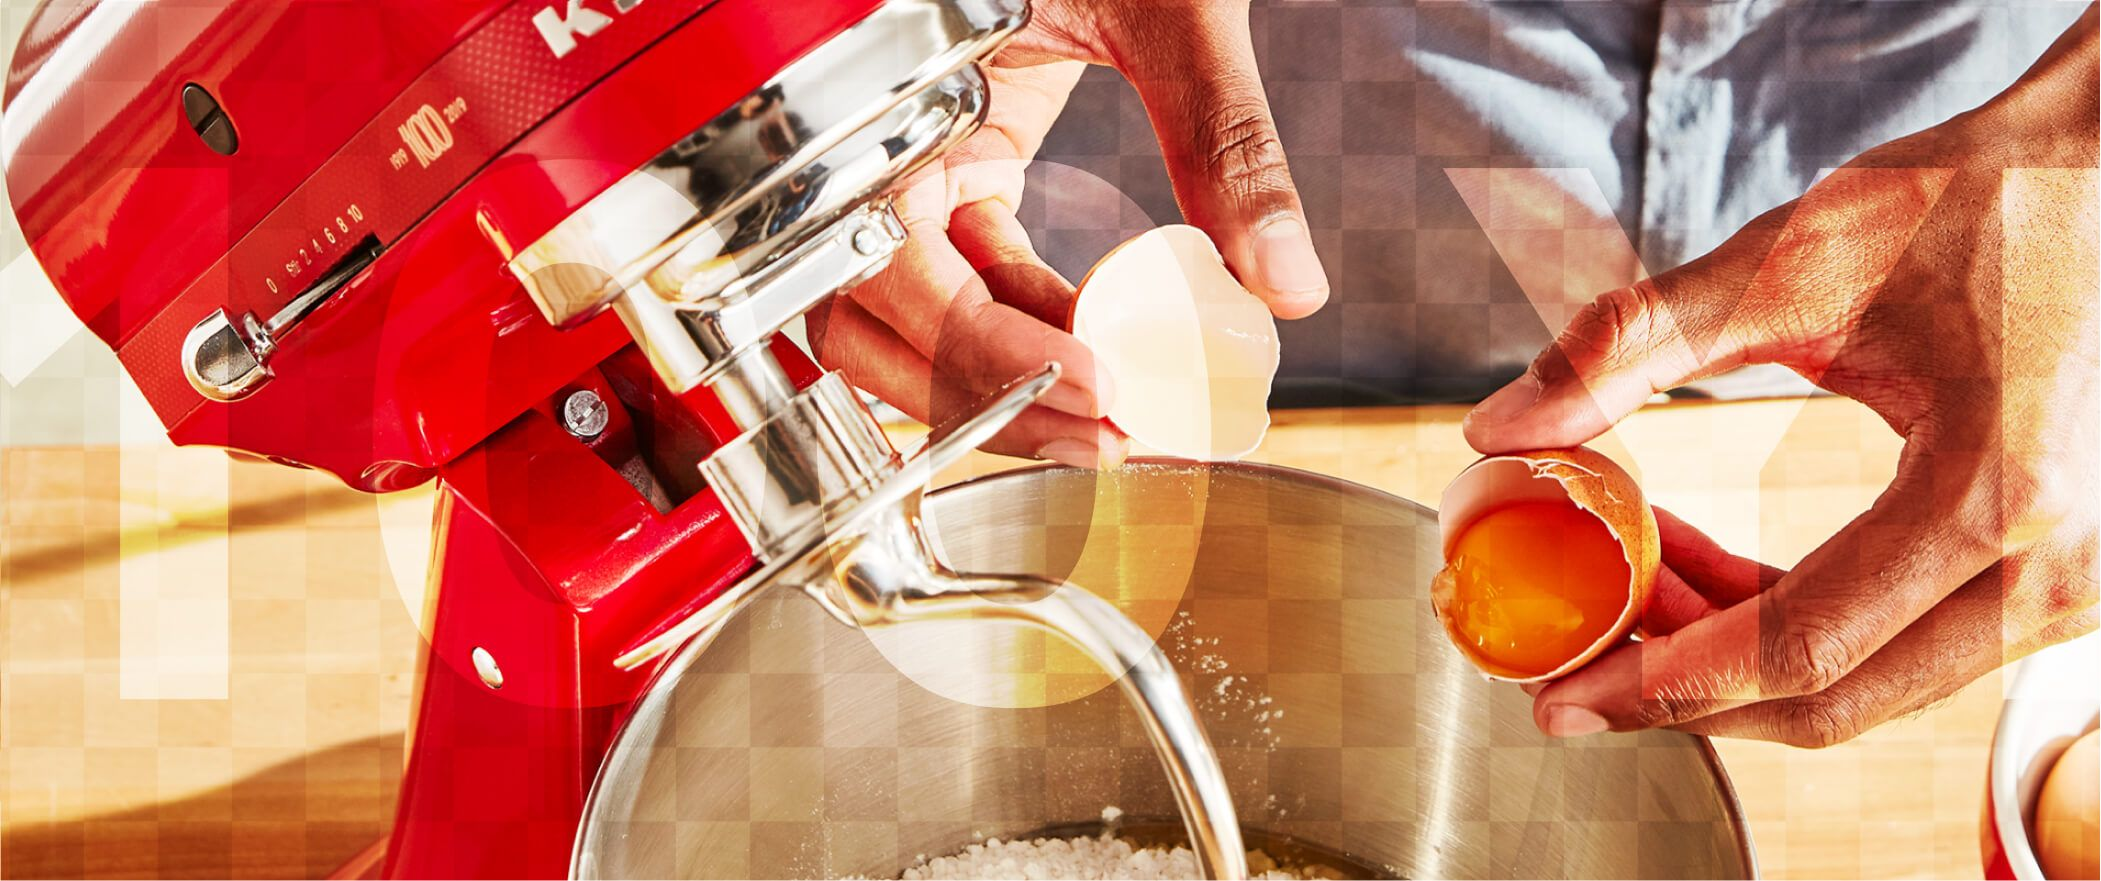 Closeup view of a KitchenAid® stand mixer in action